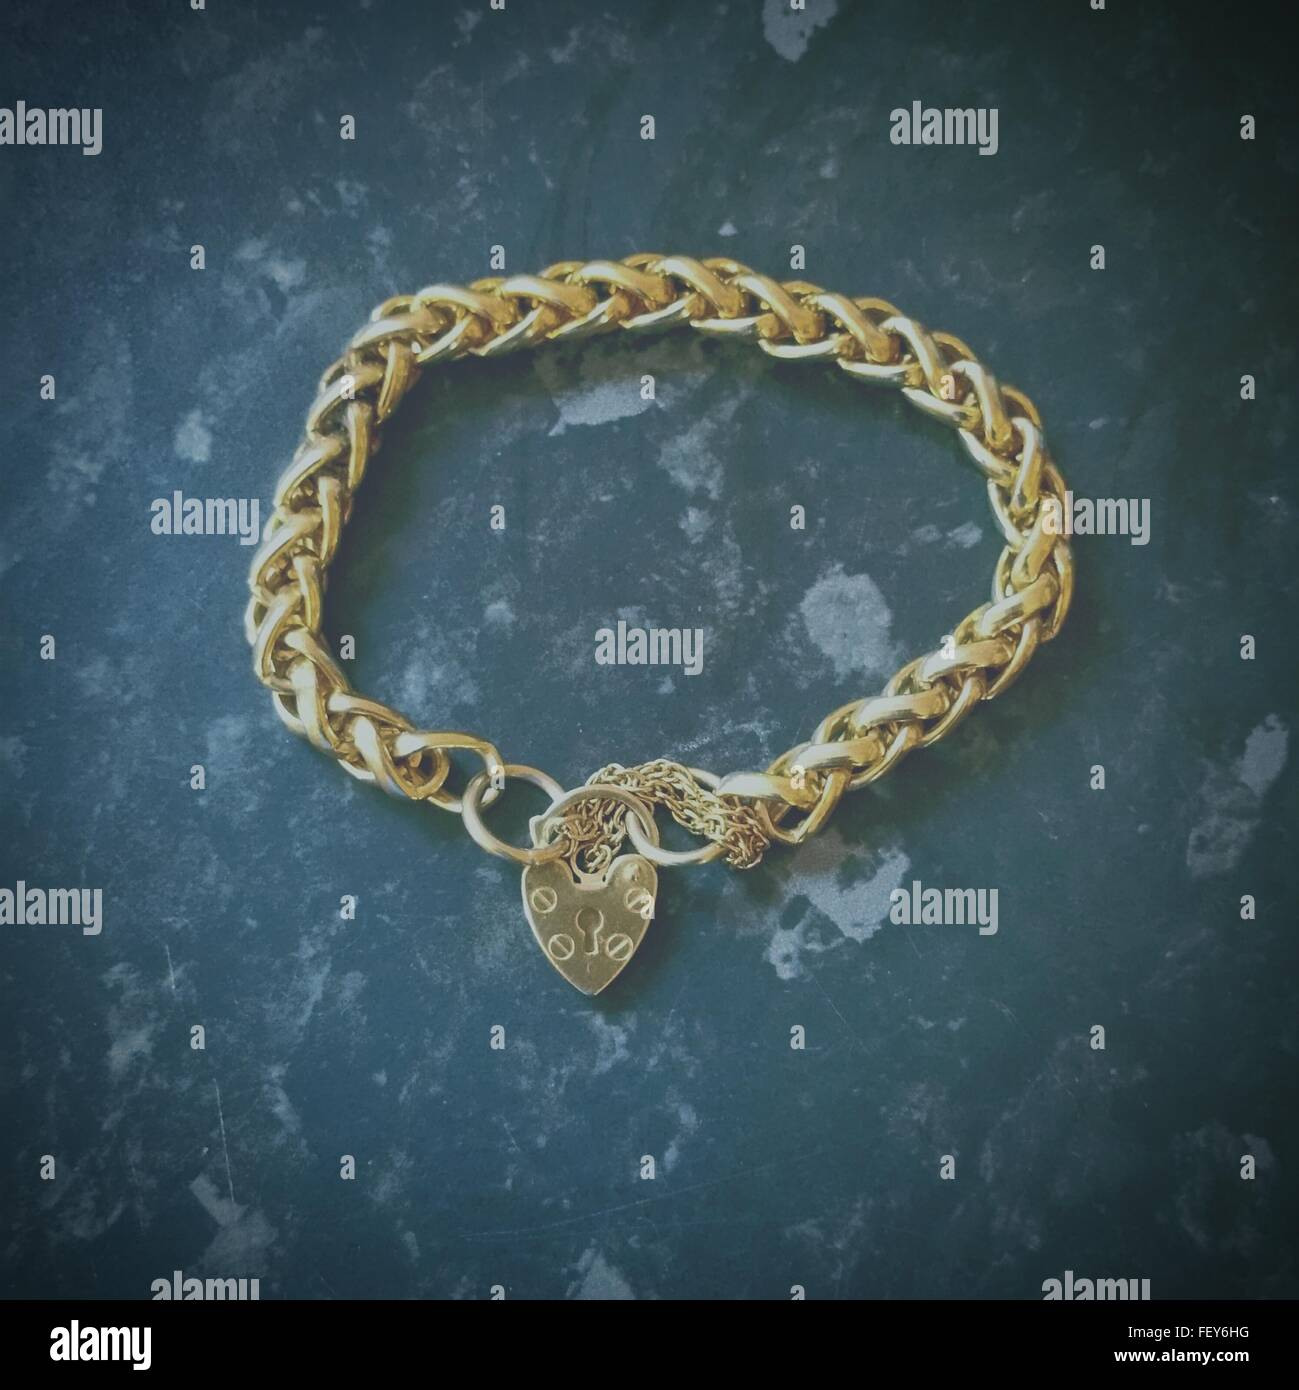 High Angle View Of Gold Bracelet On Granite - Stock Image